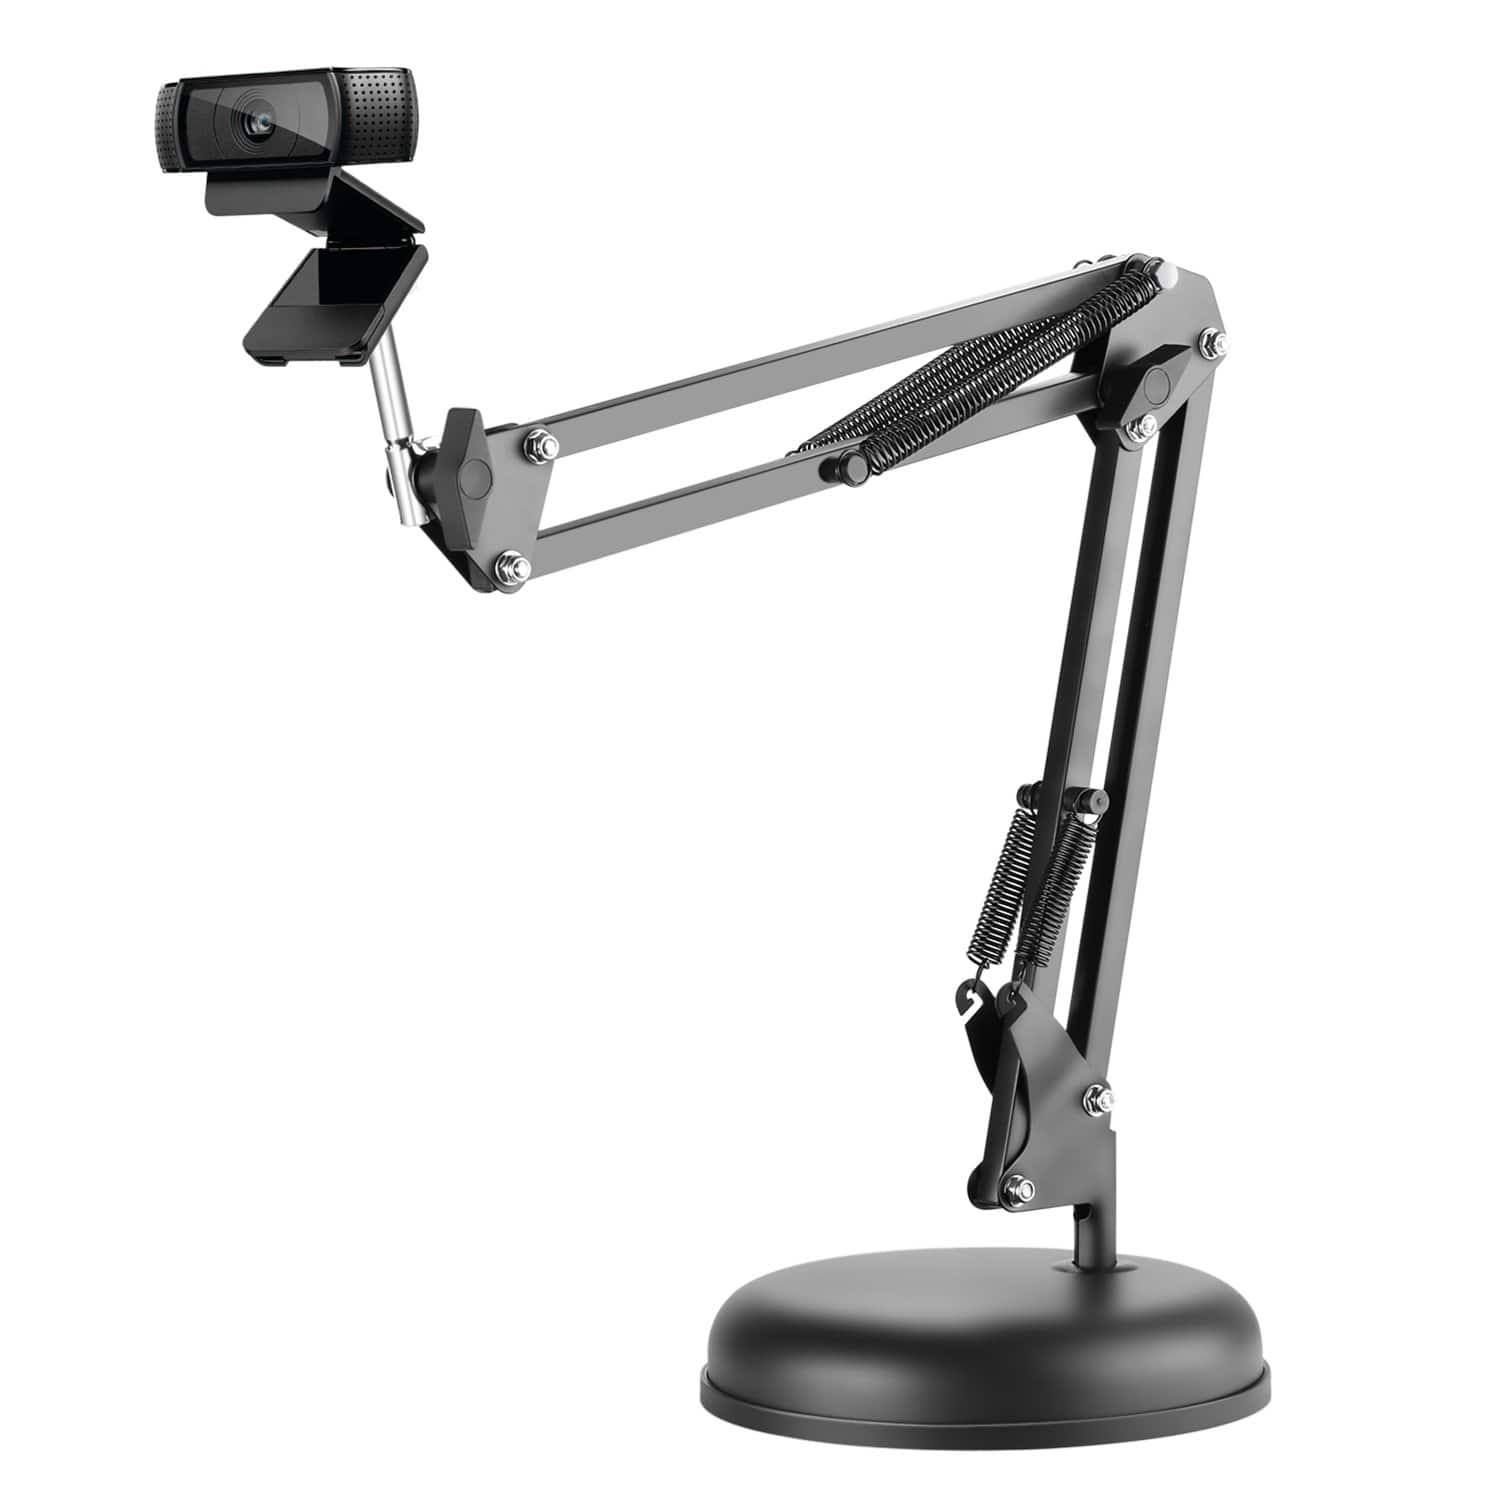 Neewer Adjustable Webcam Stand with base for Logitech - $11.99